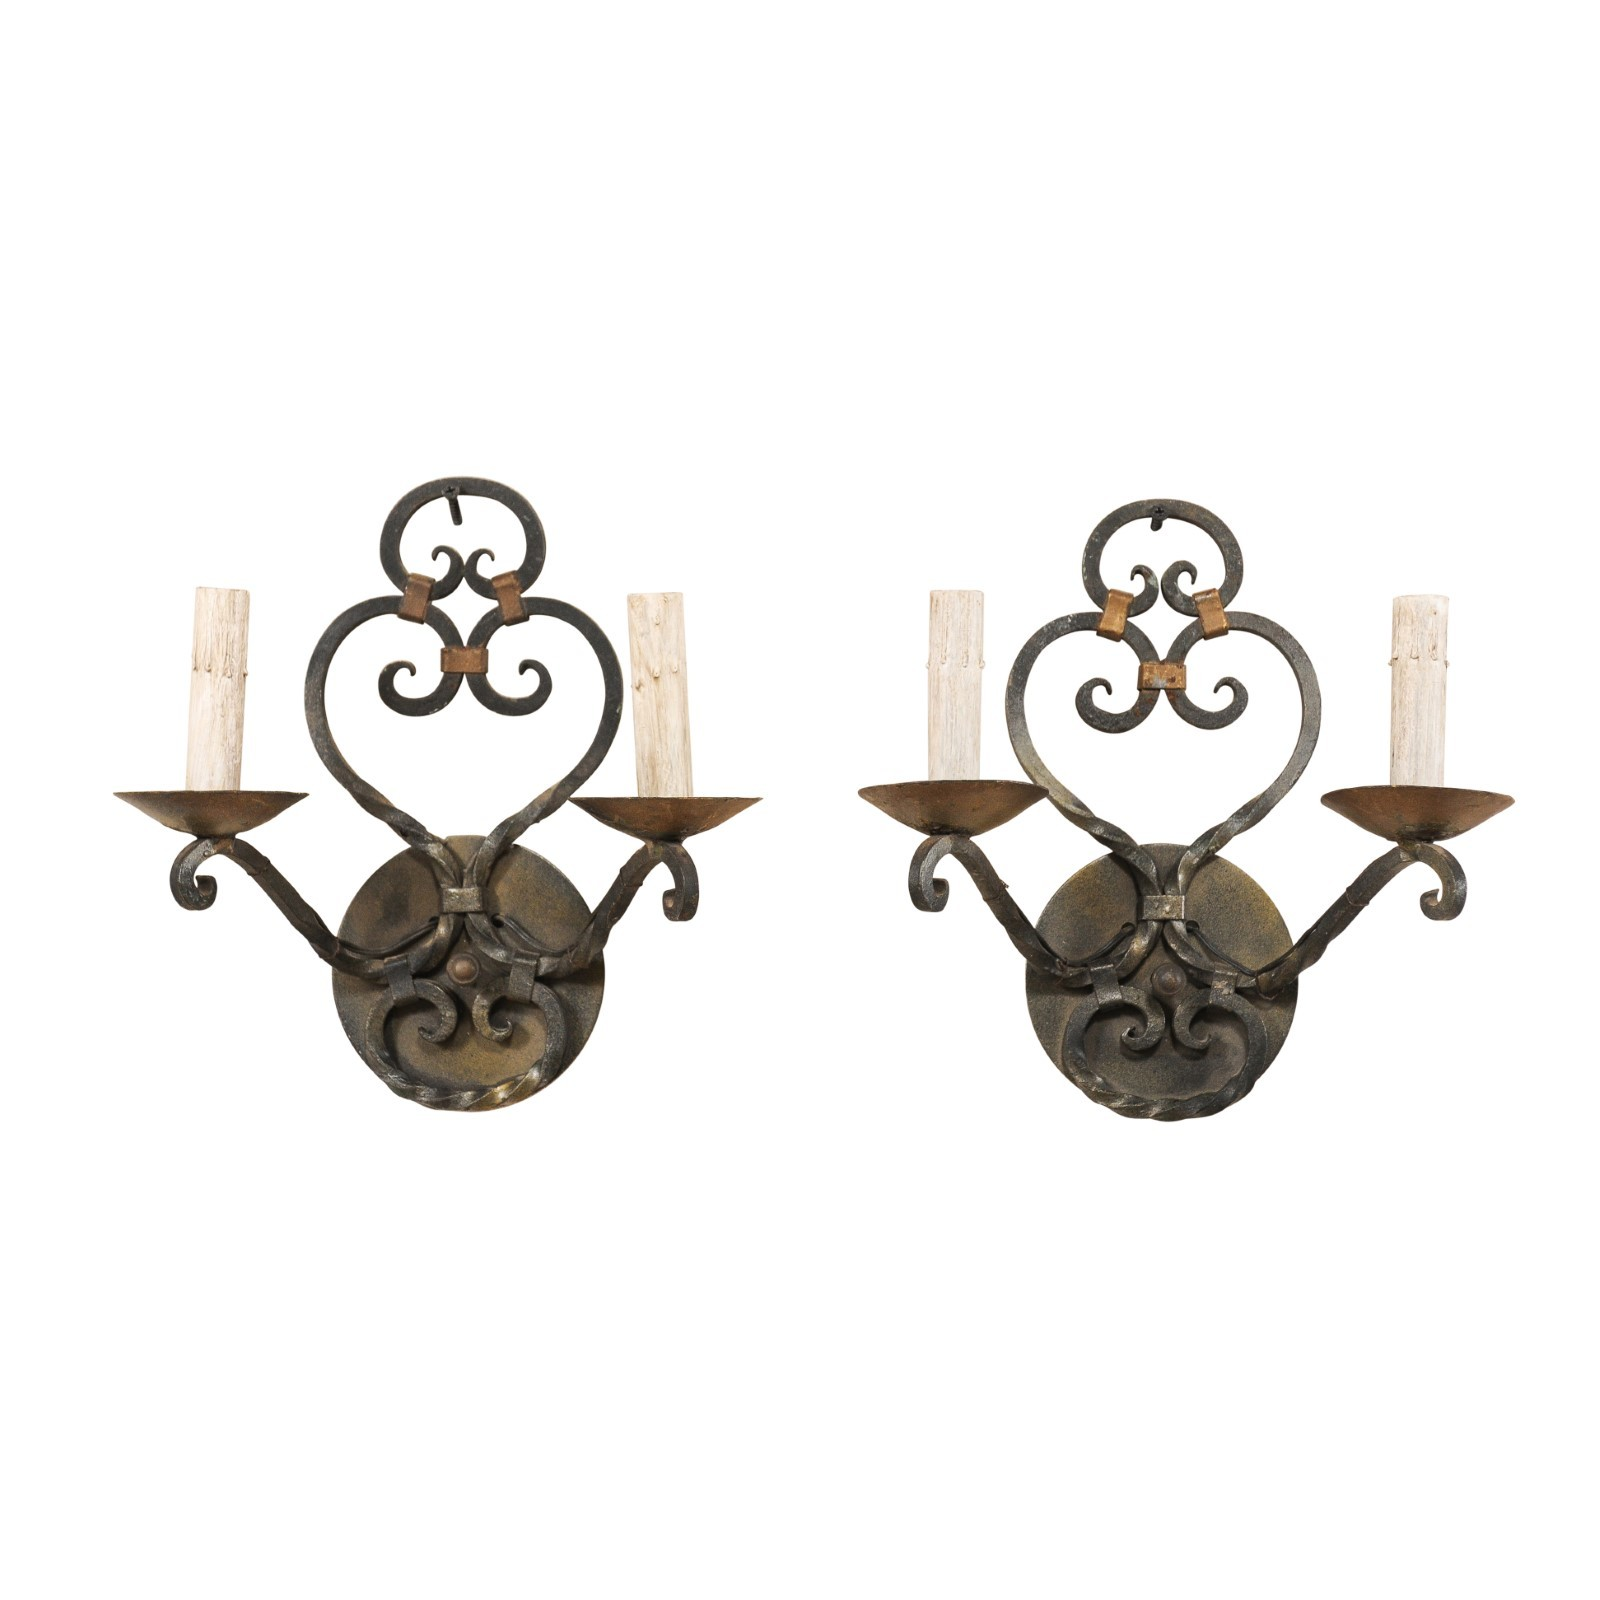 Pair of Sweetly Scrolled Iron Sconces